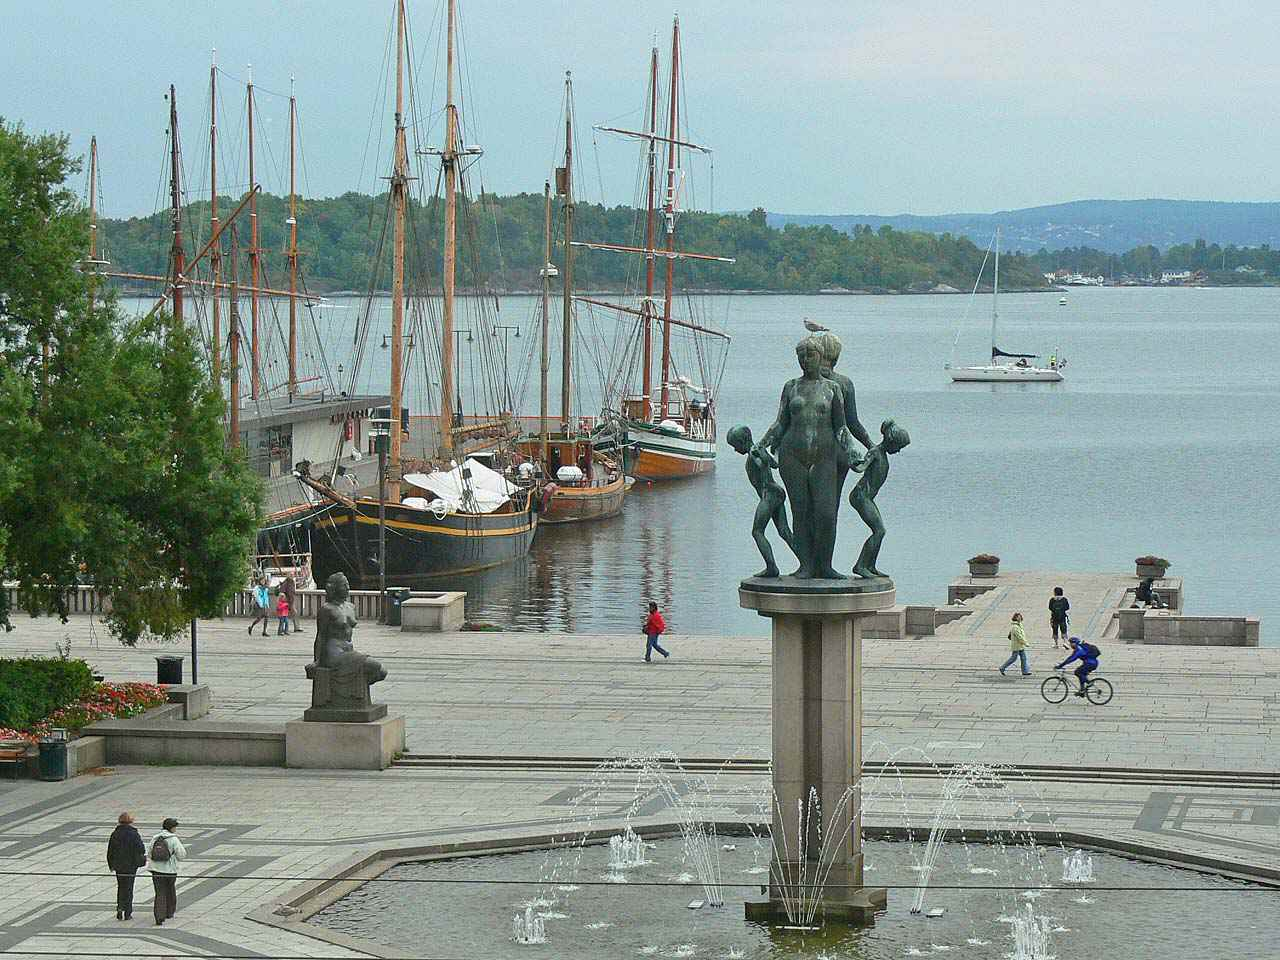 looking past a statue and fountain toward moored sailboats at a pier in water